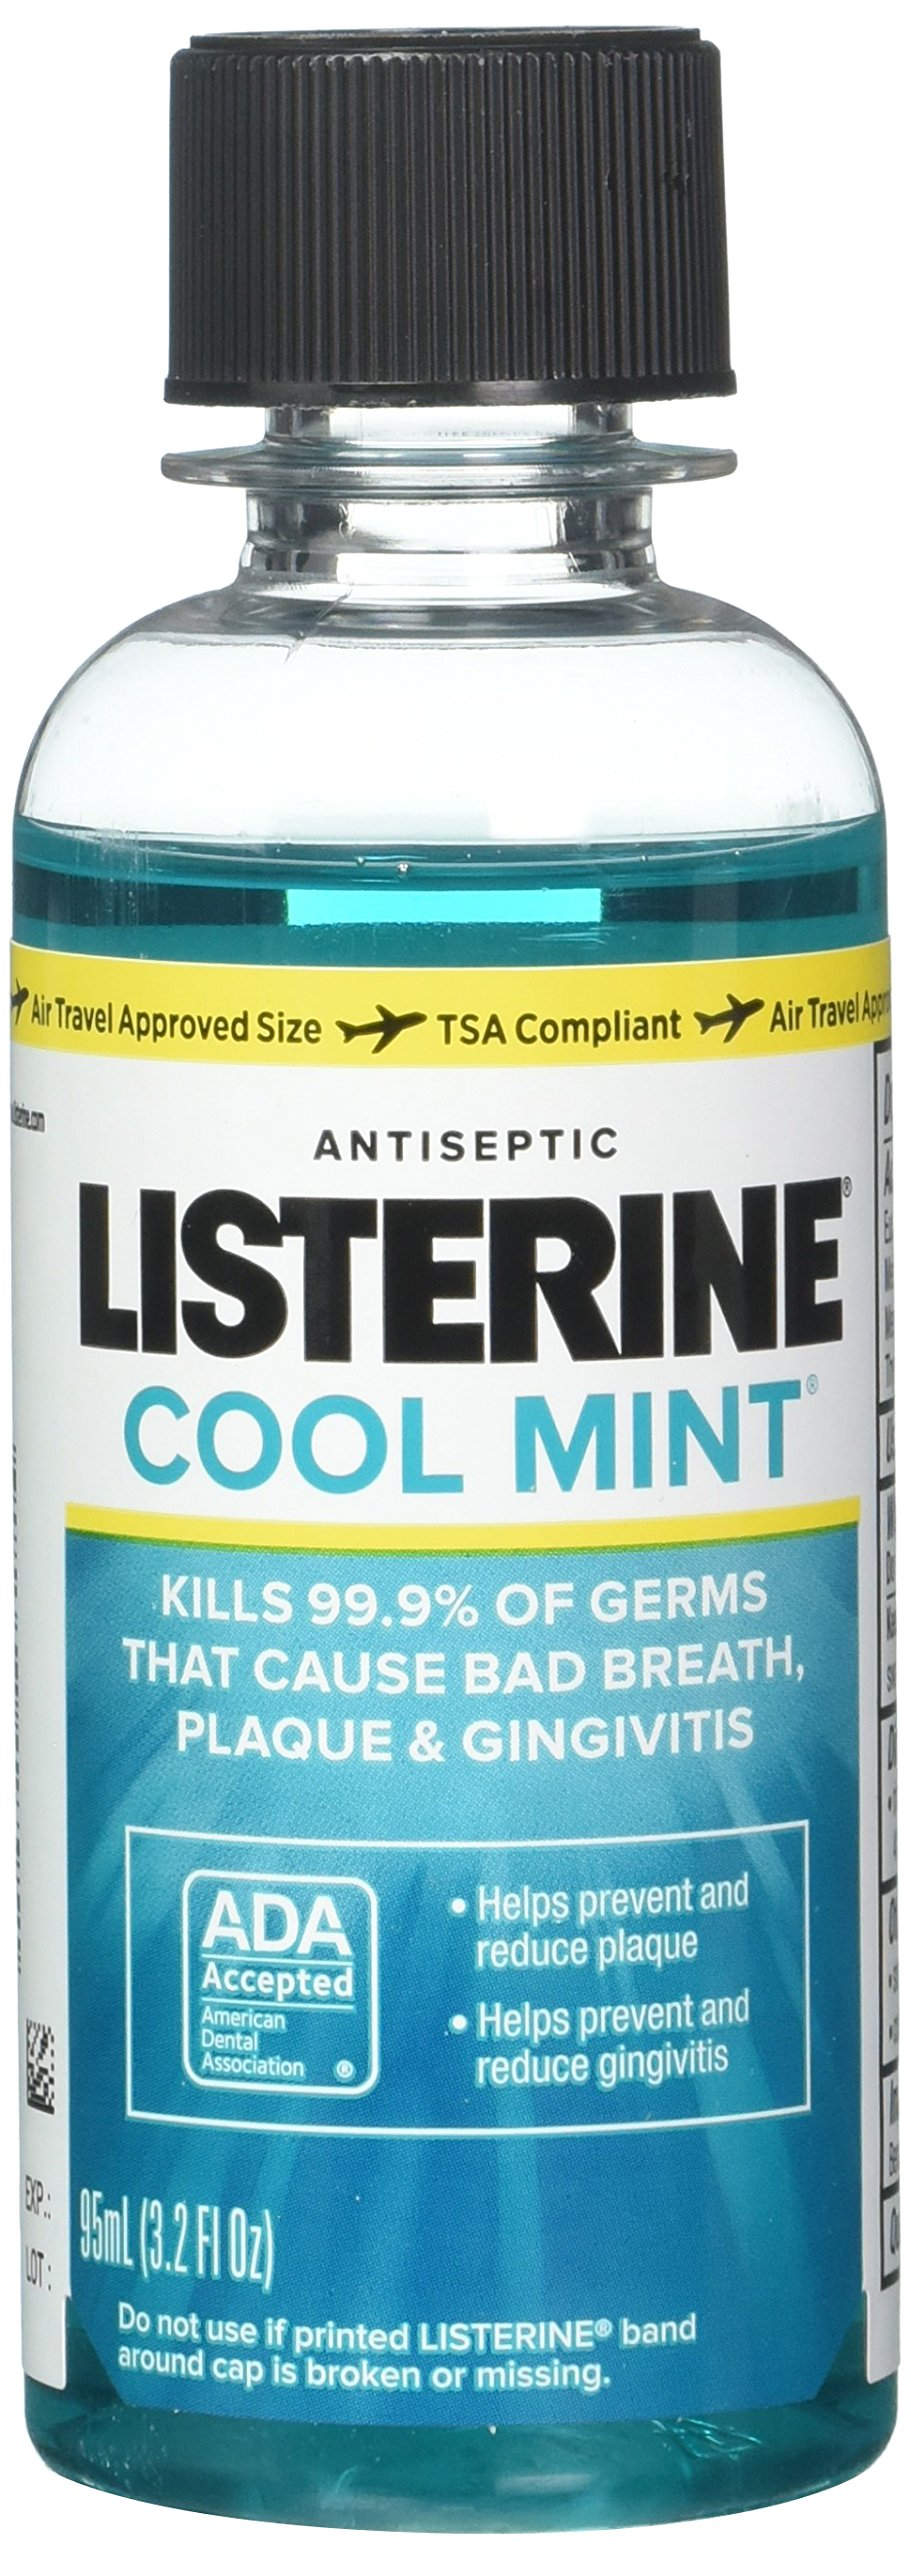 Listerine Cool Mint 3.2 oz. (Pack of 6)